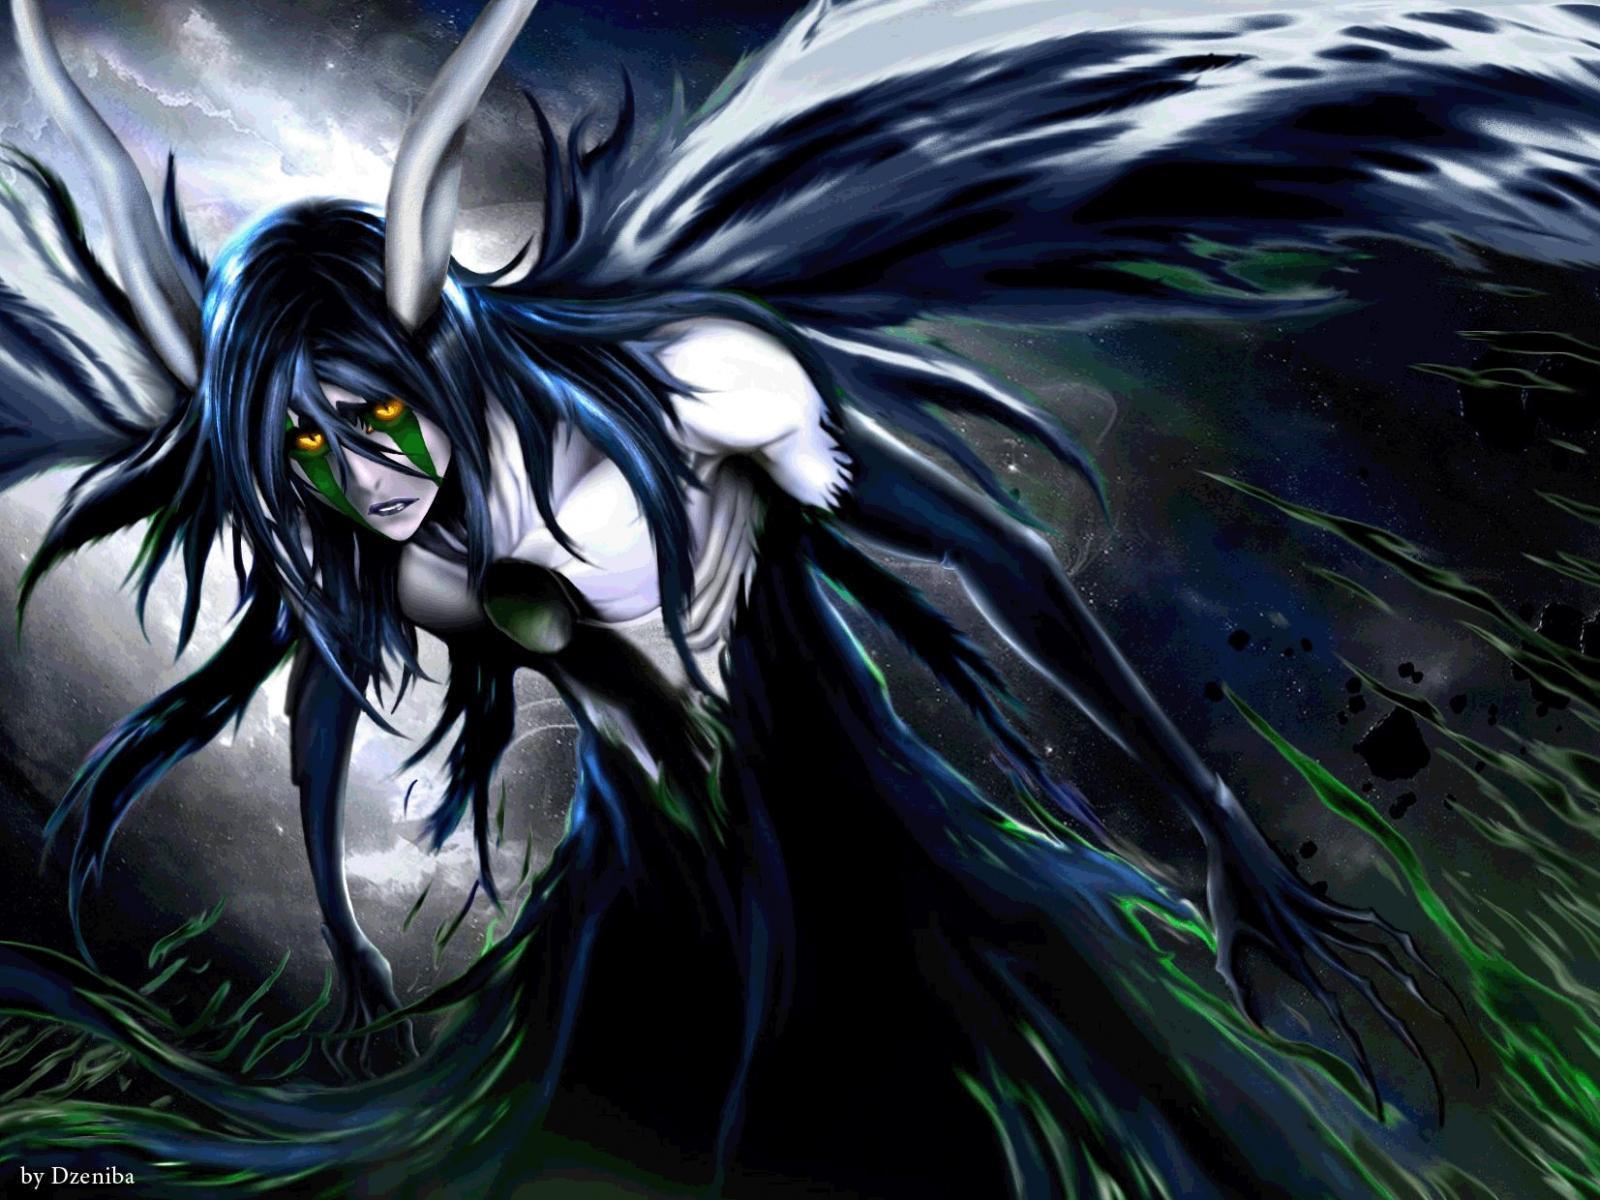 Ulquiorra Cifer 9 Fan Arts and Wallpapers | Your daily ...